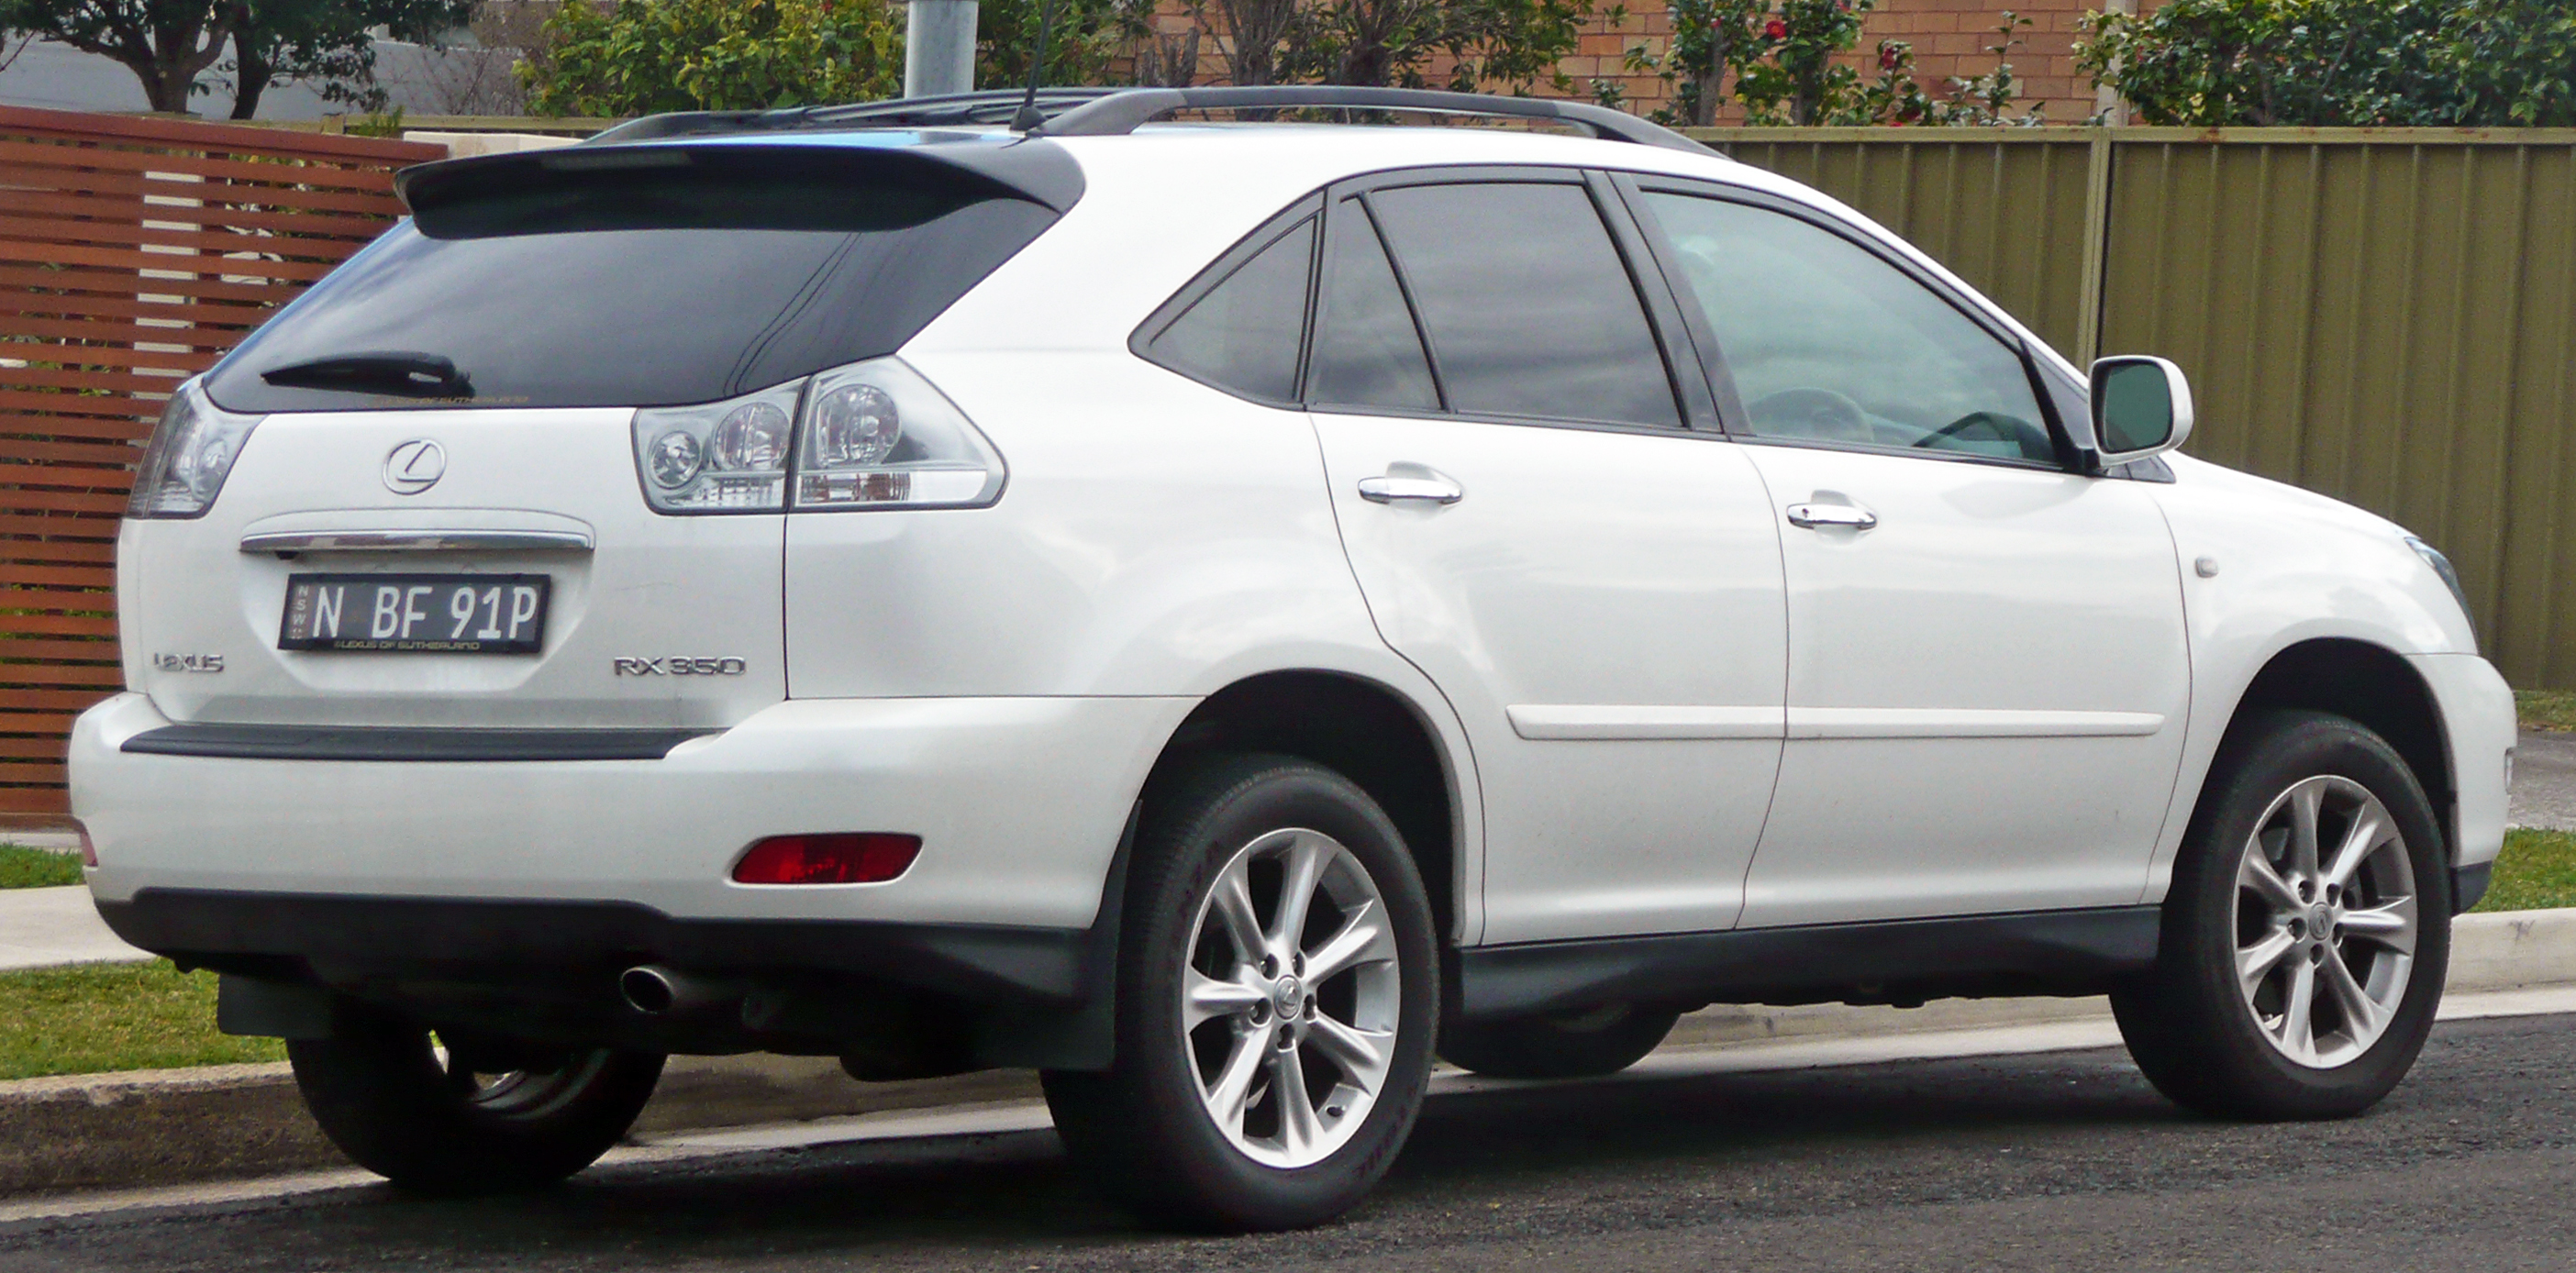 2006 lexus rx suv with File 2007 2008 Lexus Rx 350  Gsu35r  Sports Luxury Wagon 03 on 739559 Lexus Nx Real World Pictures And Videos Thread 7 moreover File 2007 2008 Lexus RX 350  GSU35R  Sports Luxury wagon 03 in addition 2004 Lexus Lx 470 Pictures C2506 pi36011766 in addition News view 4736 additionally Lexus gx 470 2006.